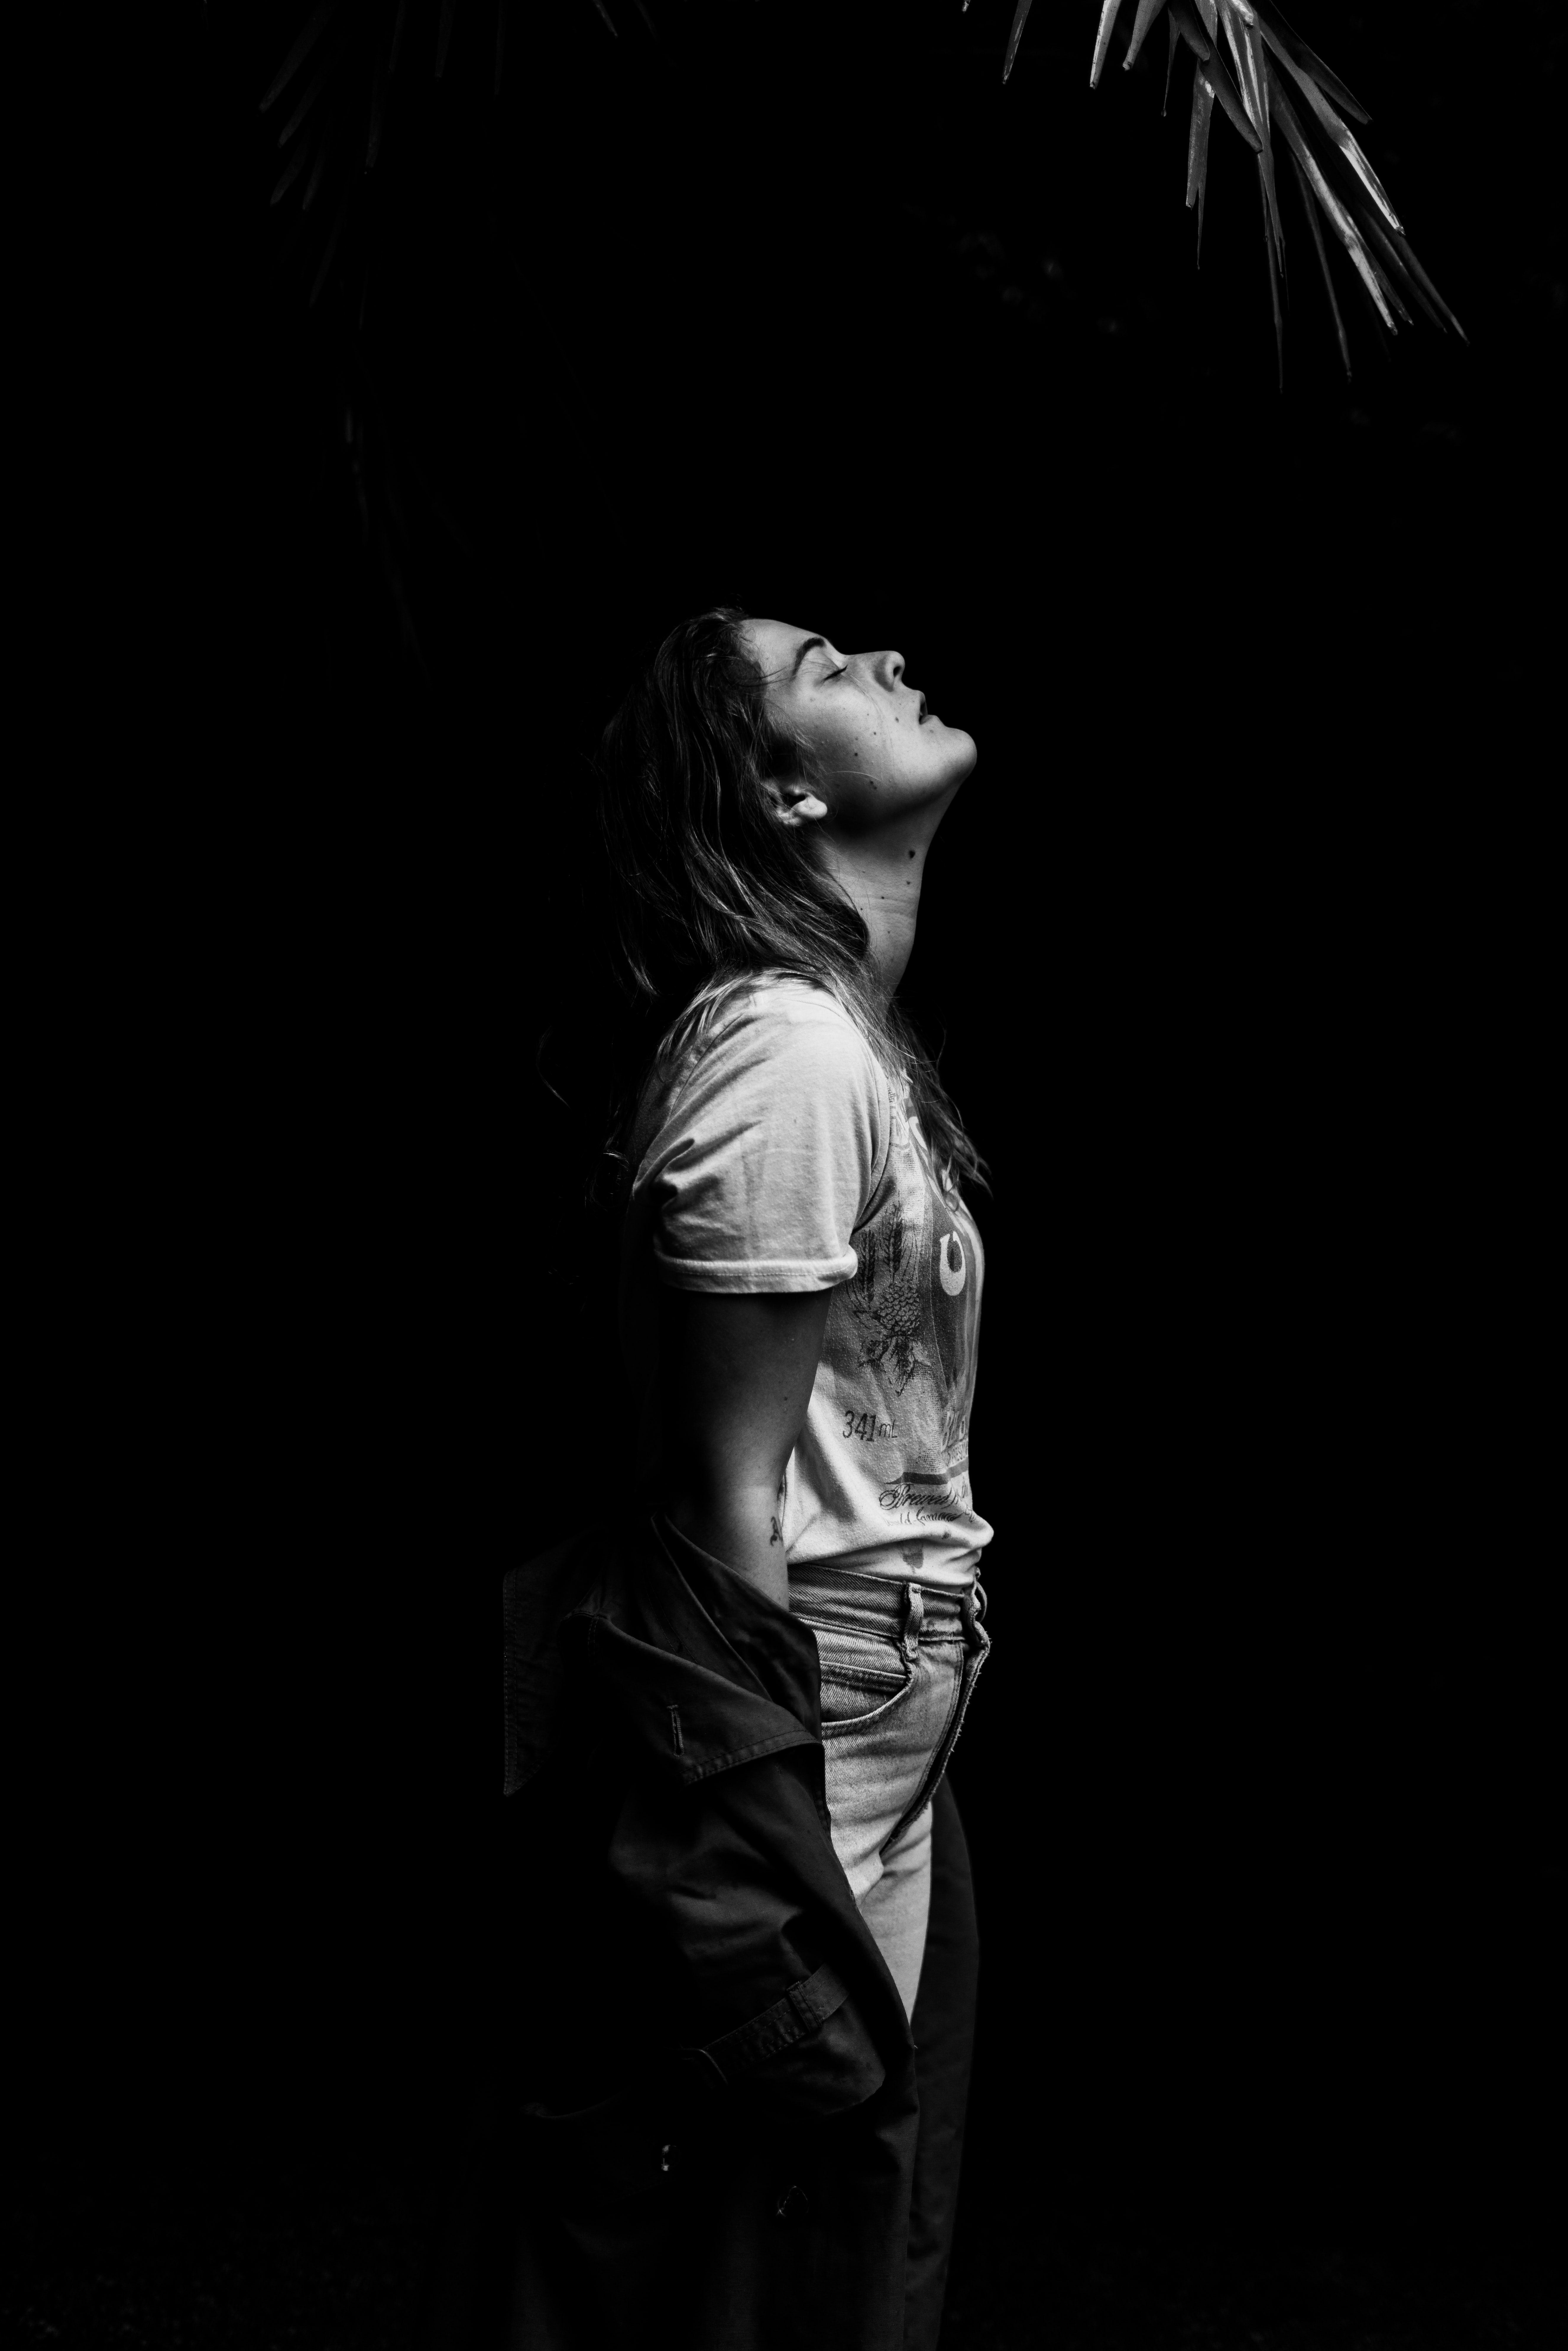 woman standing on dark place